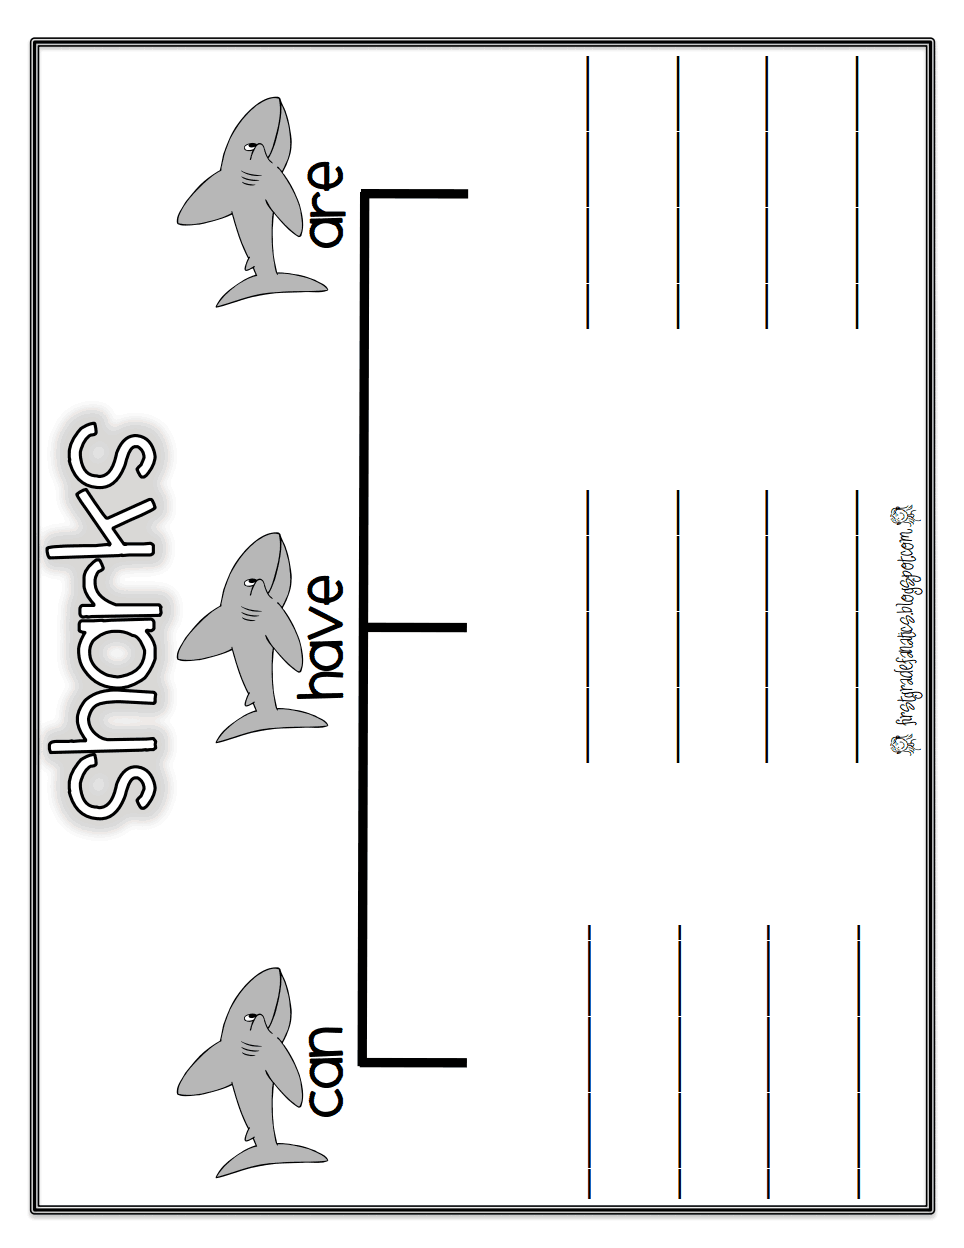 Grade 2 Worksheet Pdf Shark Reportpdf  Worksheet  Pinterest  Teaching Science And  Business Budget Worksheet Excel with Plant Dichotomous Key Worksheet Pdf Worksheets  Shark Reportpdf Ue Words Phonics Worksheets Word